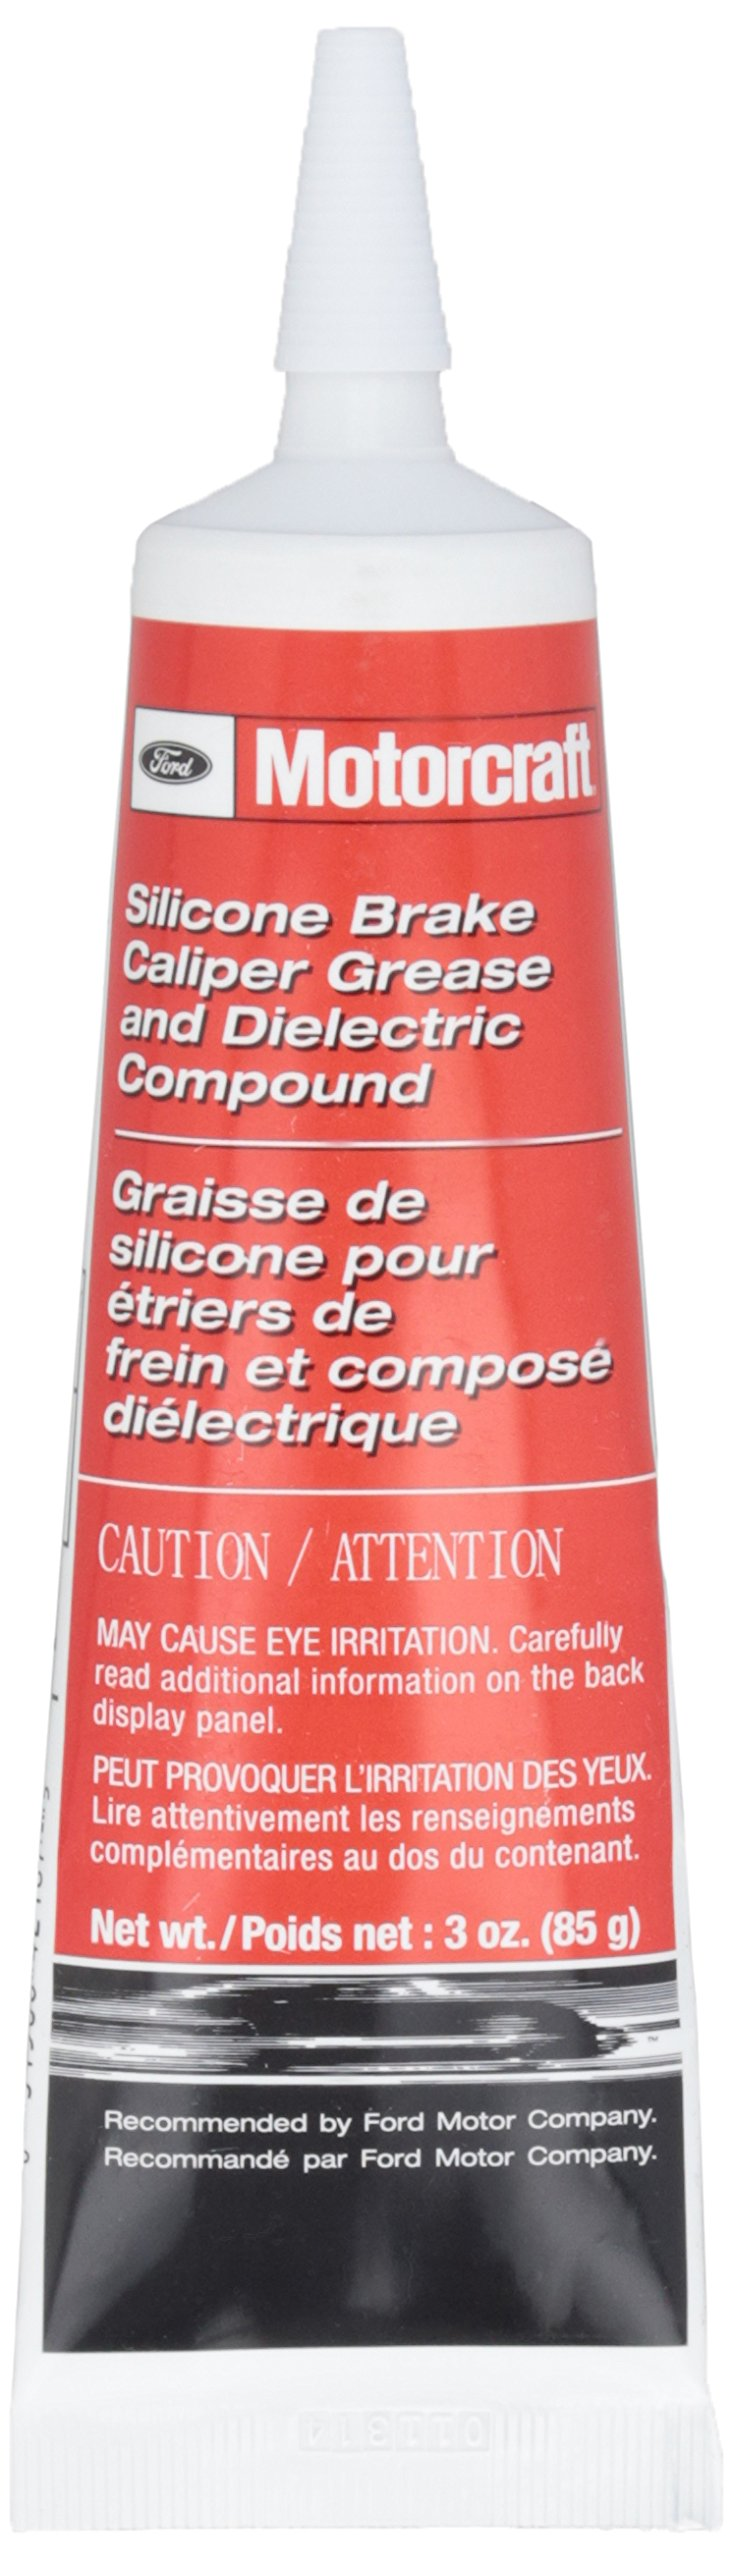 Ford Genuine Fluid XG-3-A Silicone Brake Caliper Grease and Dielectric Compound - 3 oz. by Ford